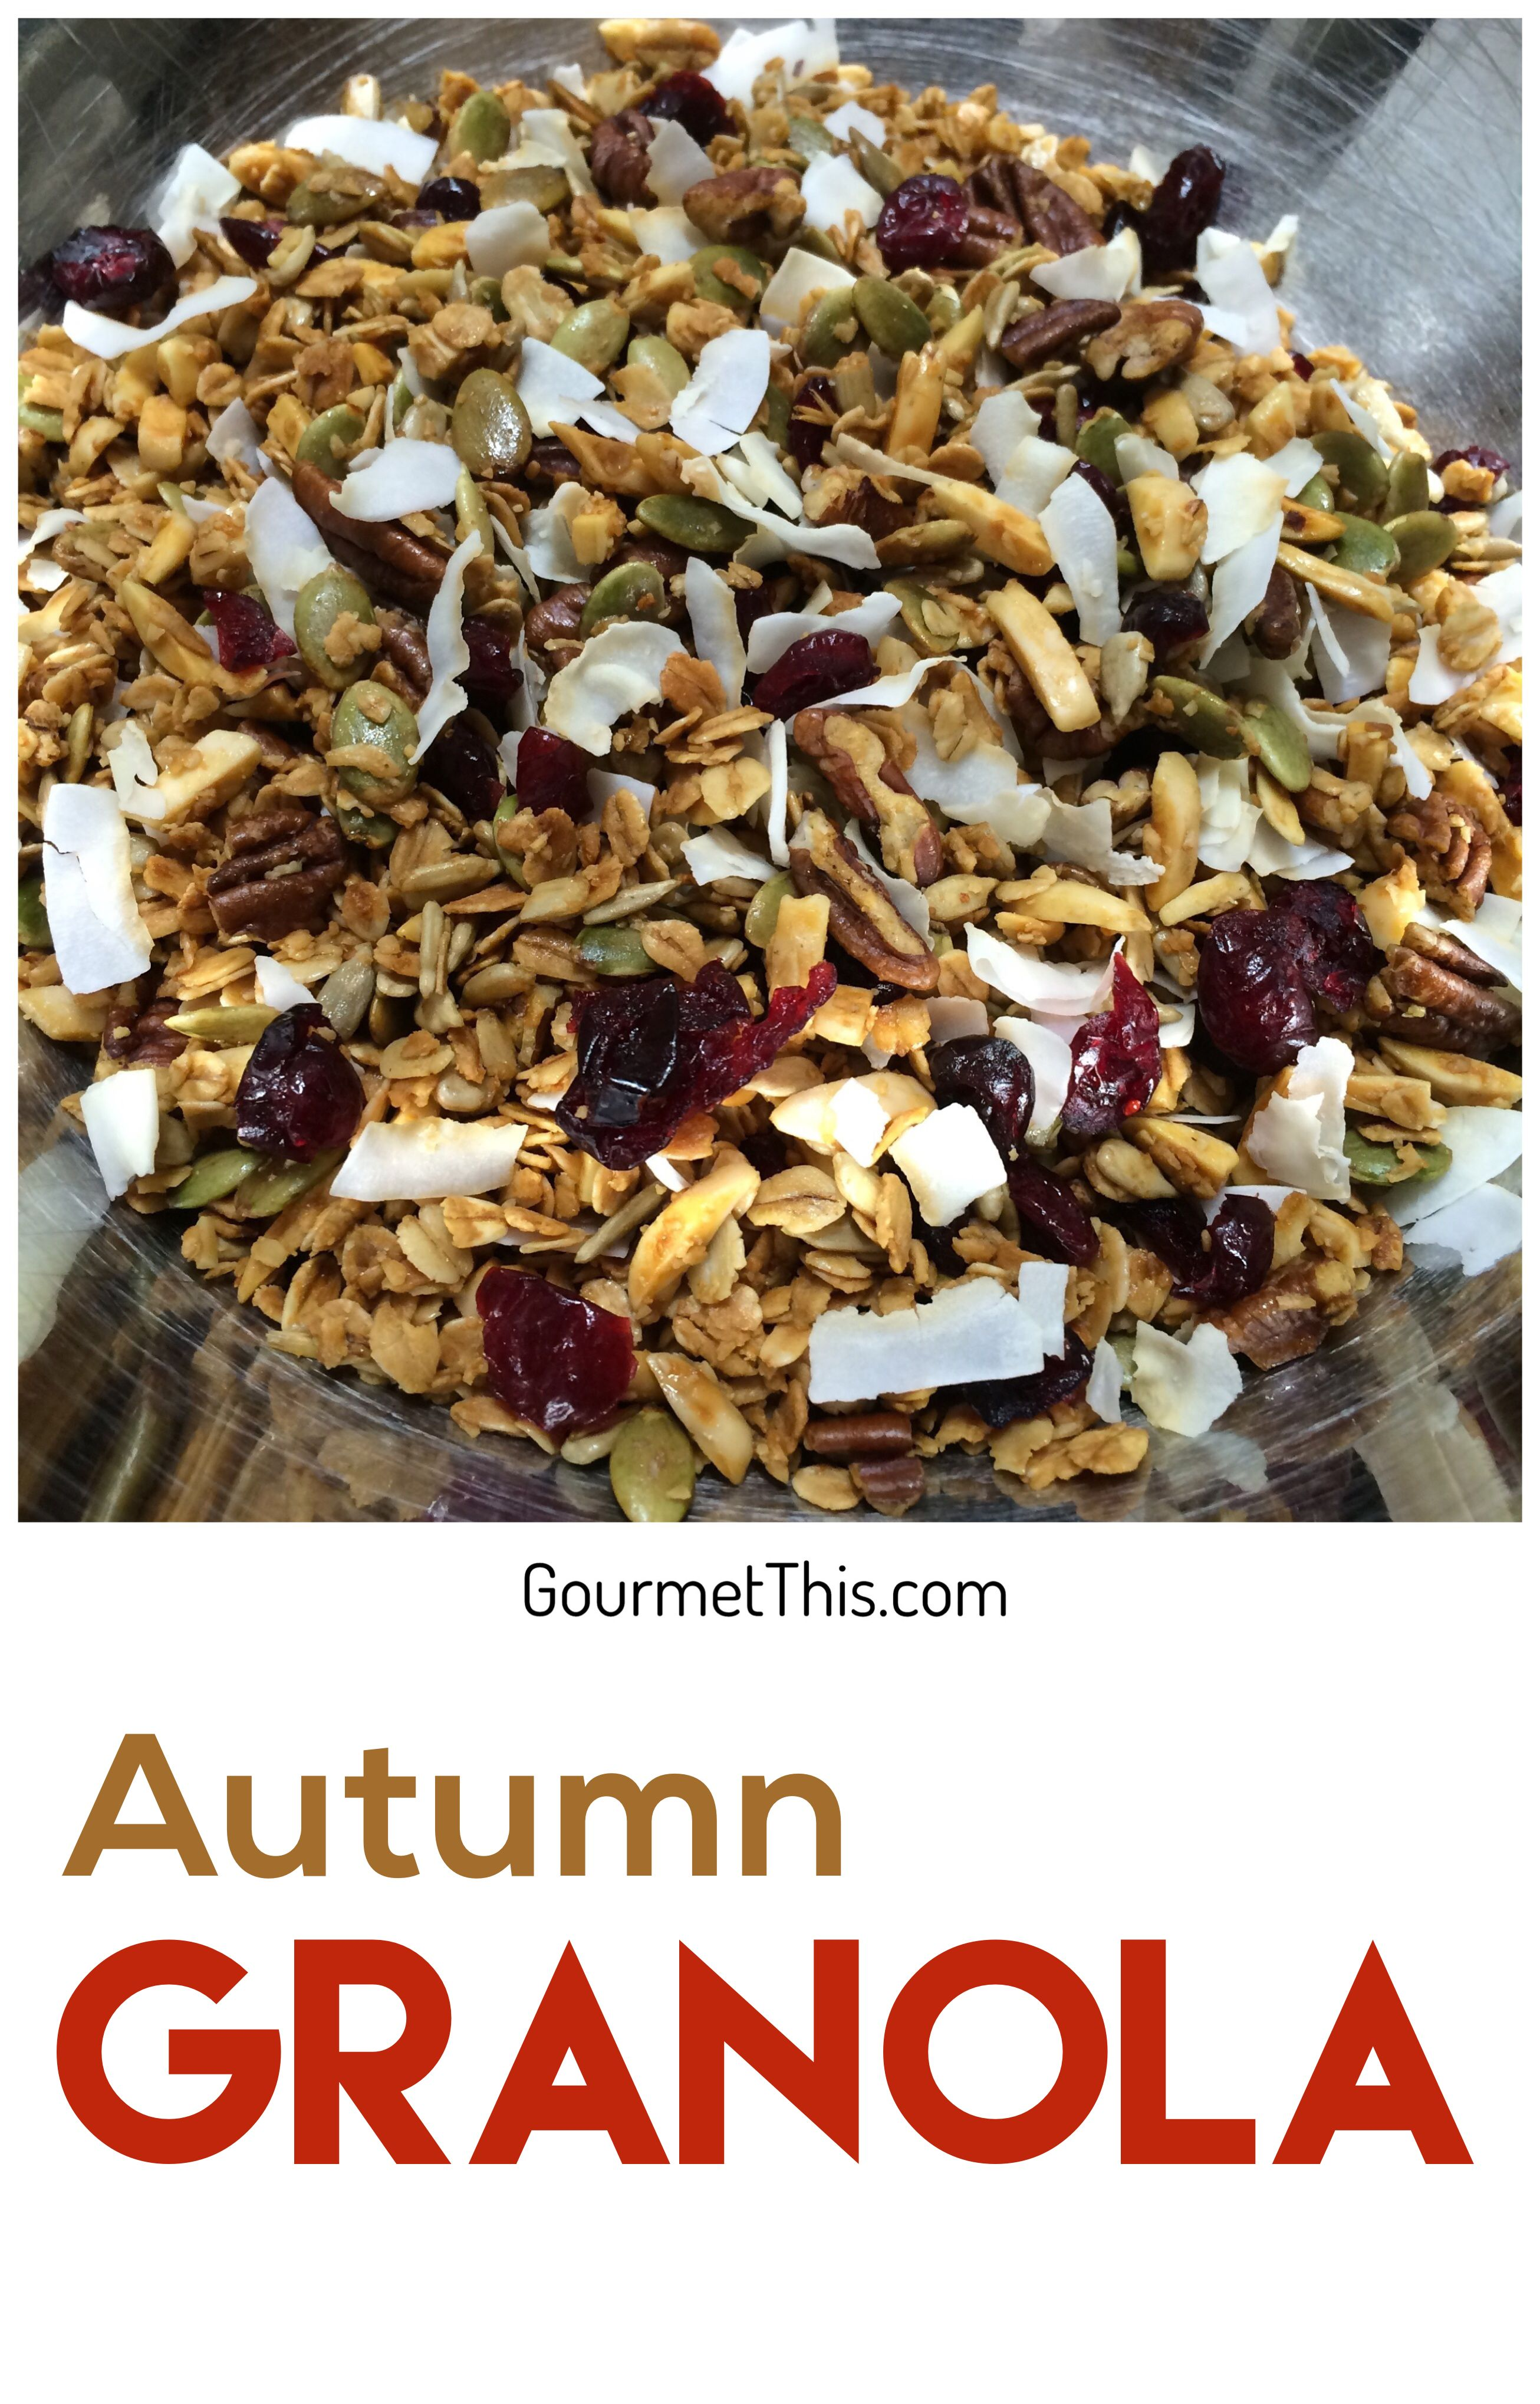 Autumn Granola - Healthy, easy and hands down the best granola you've ever had